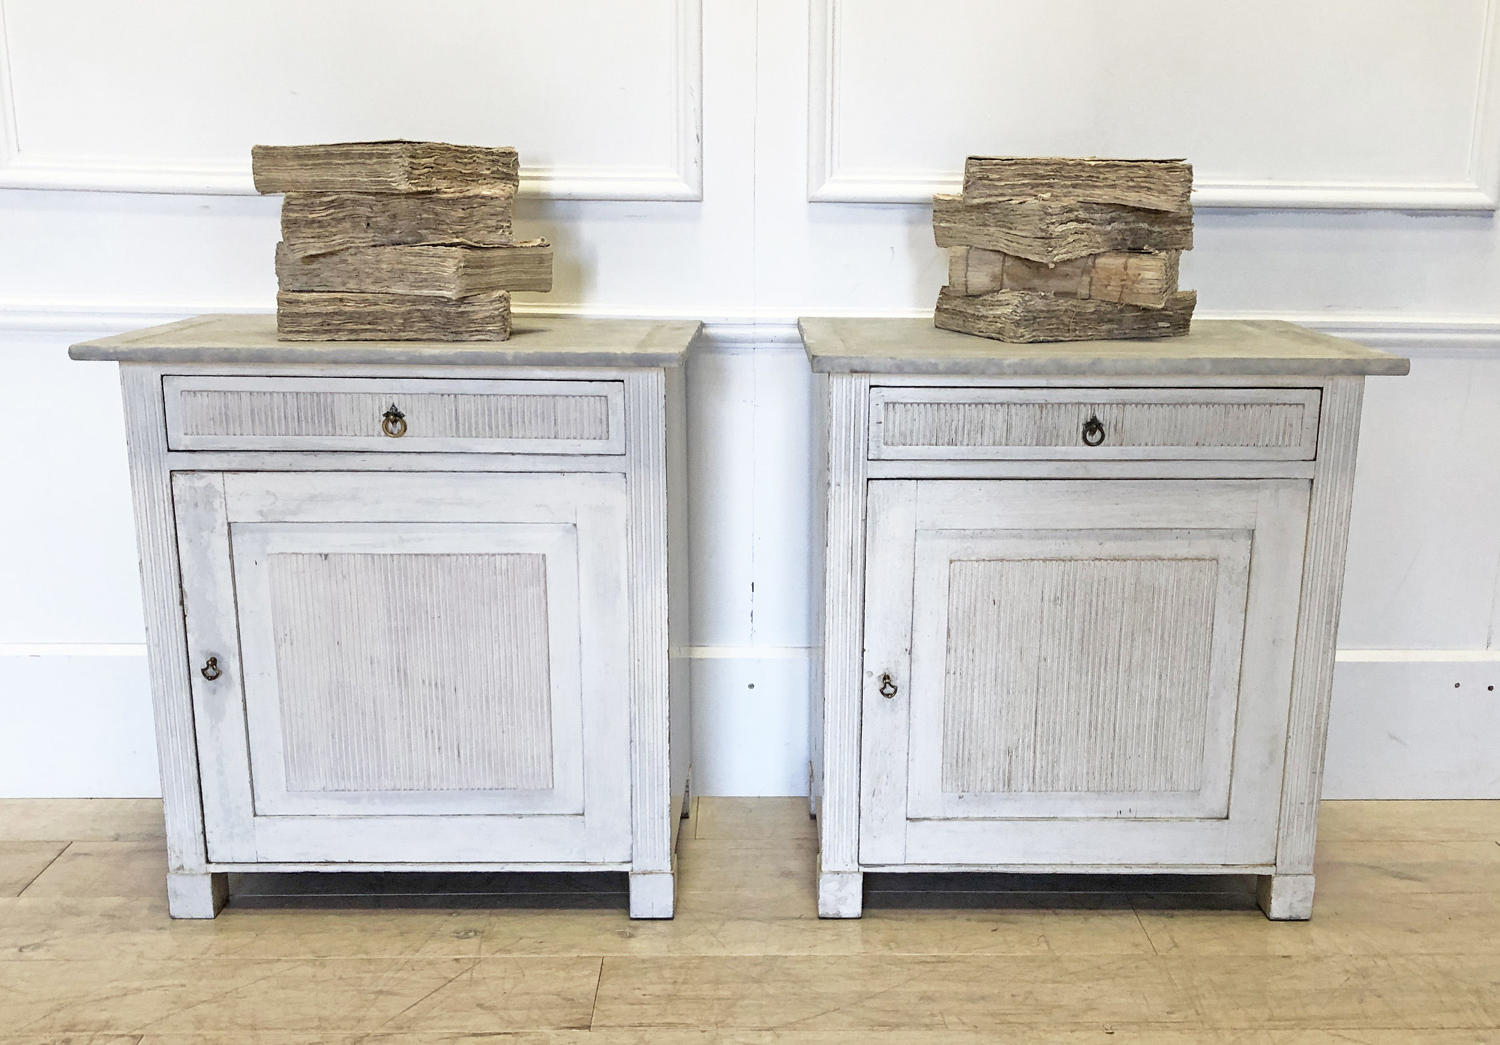 Pair of 19th century Swedish Bedside Tables - 1850